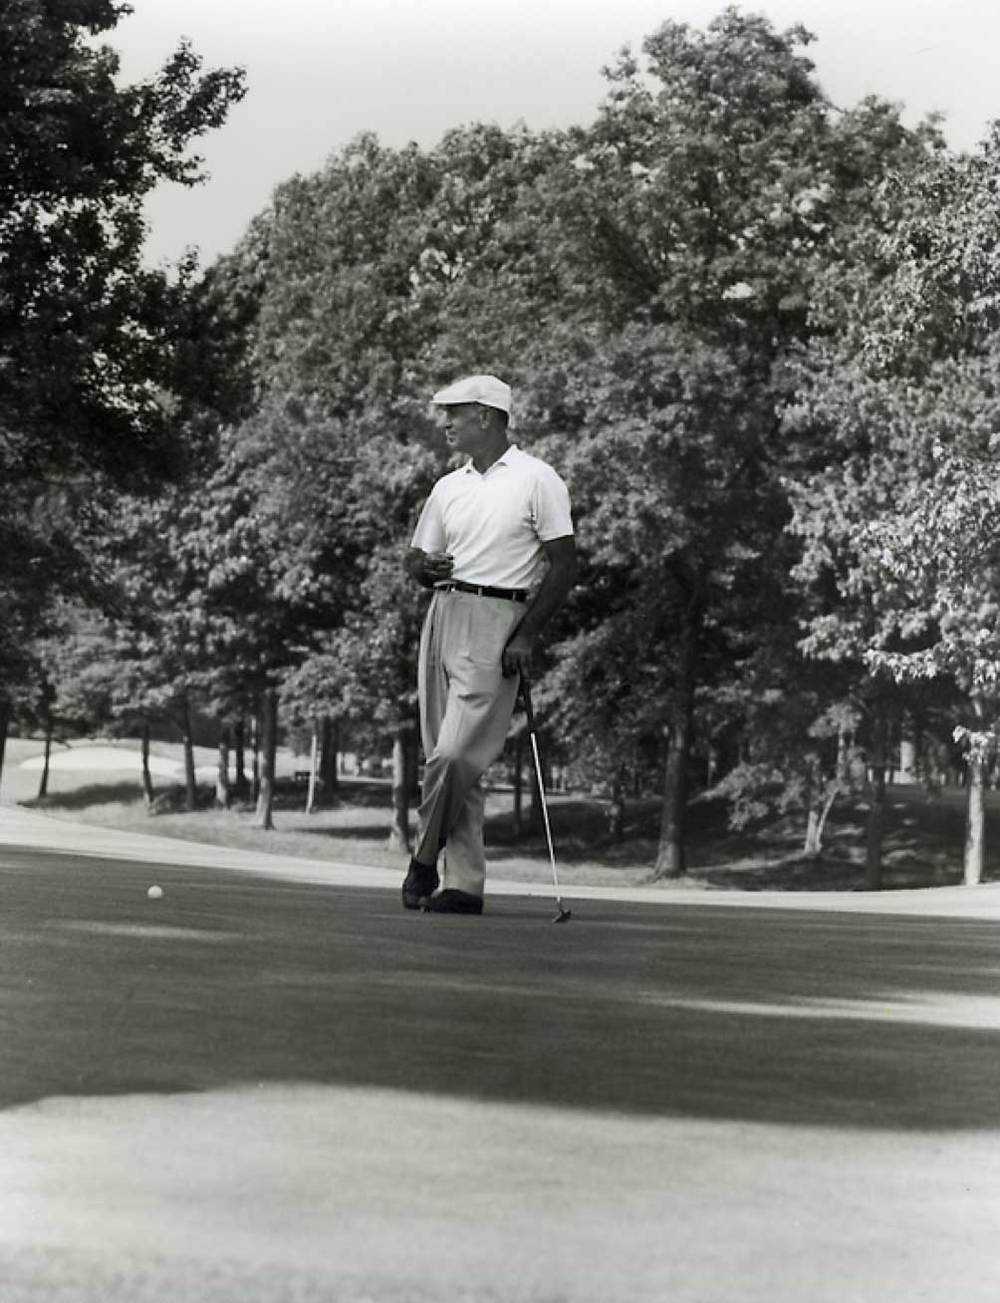 Alexander's classic of Ben Hogan at Winged Foot, 1959